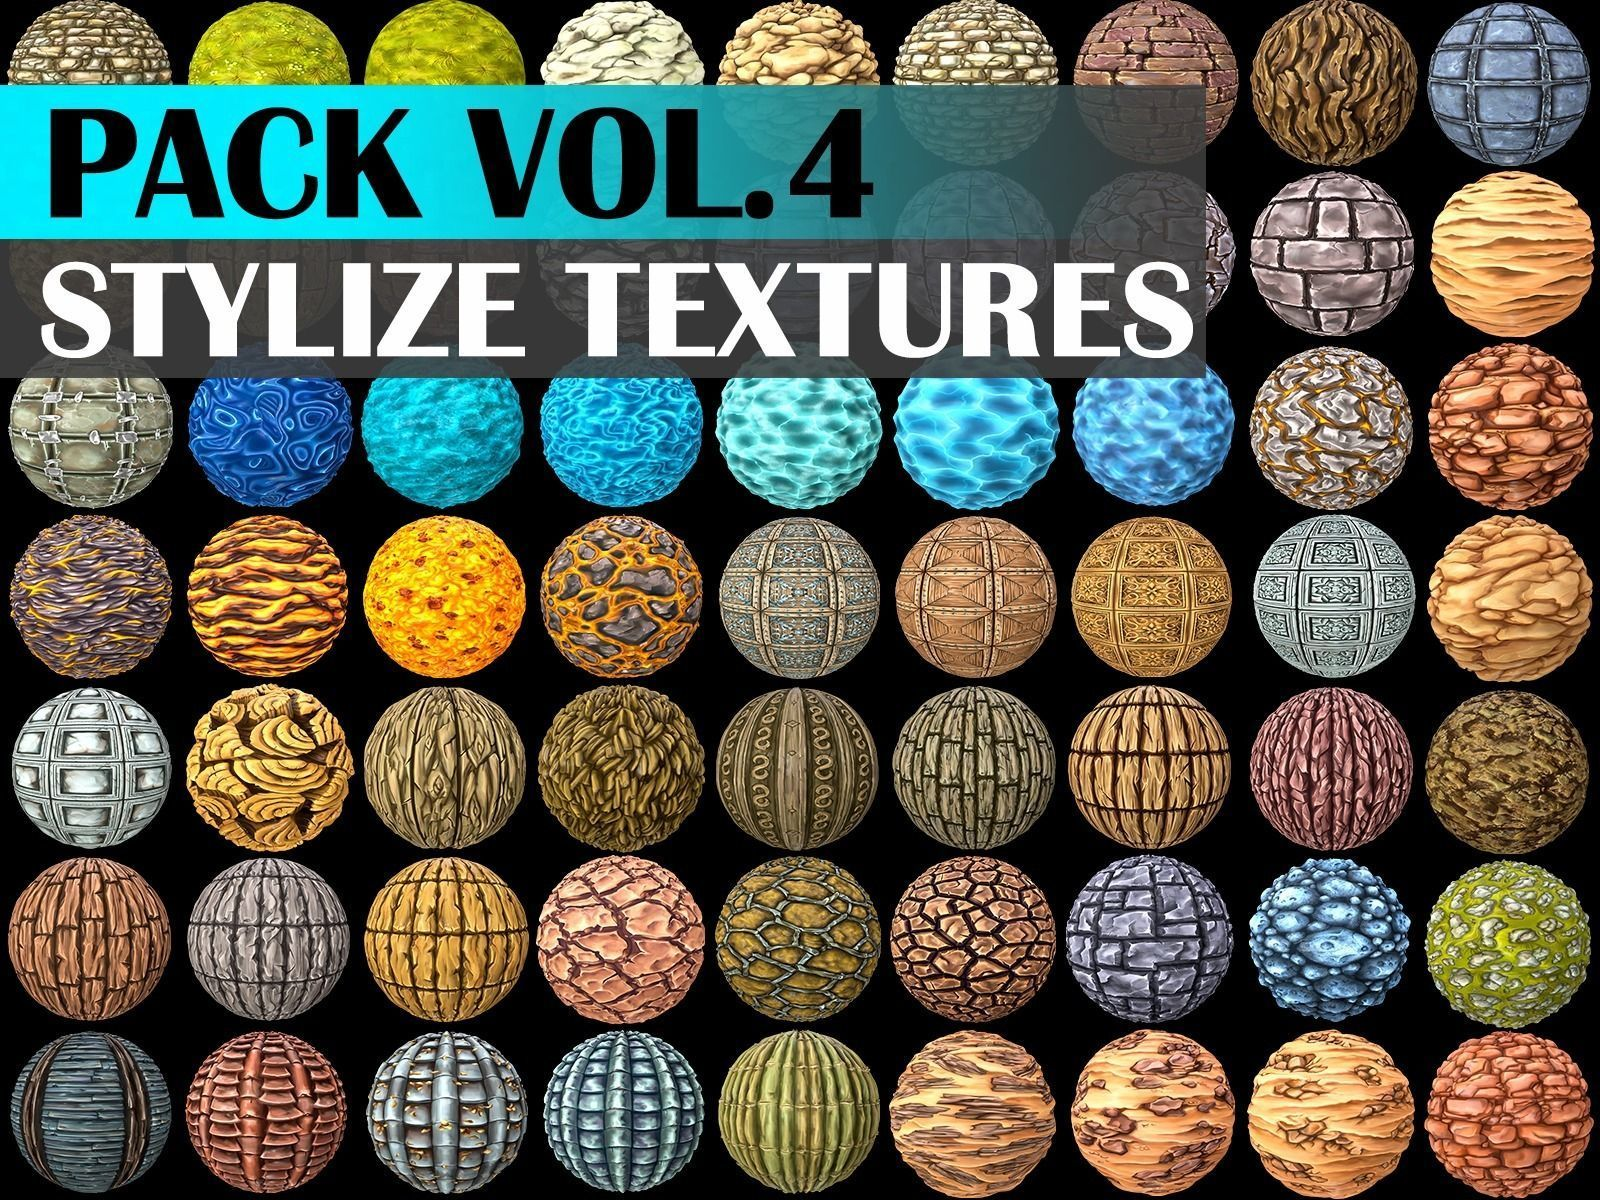 Stylized Texture Pack - VOL 4